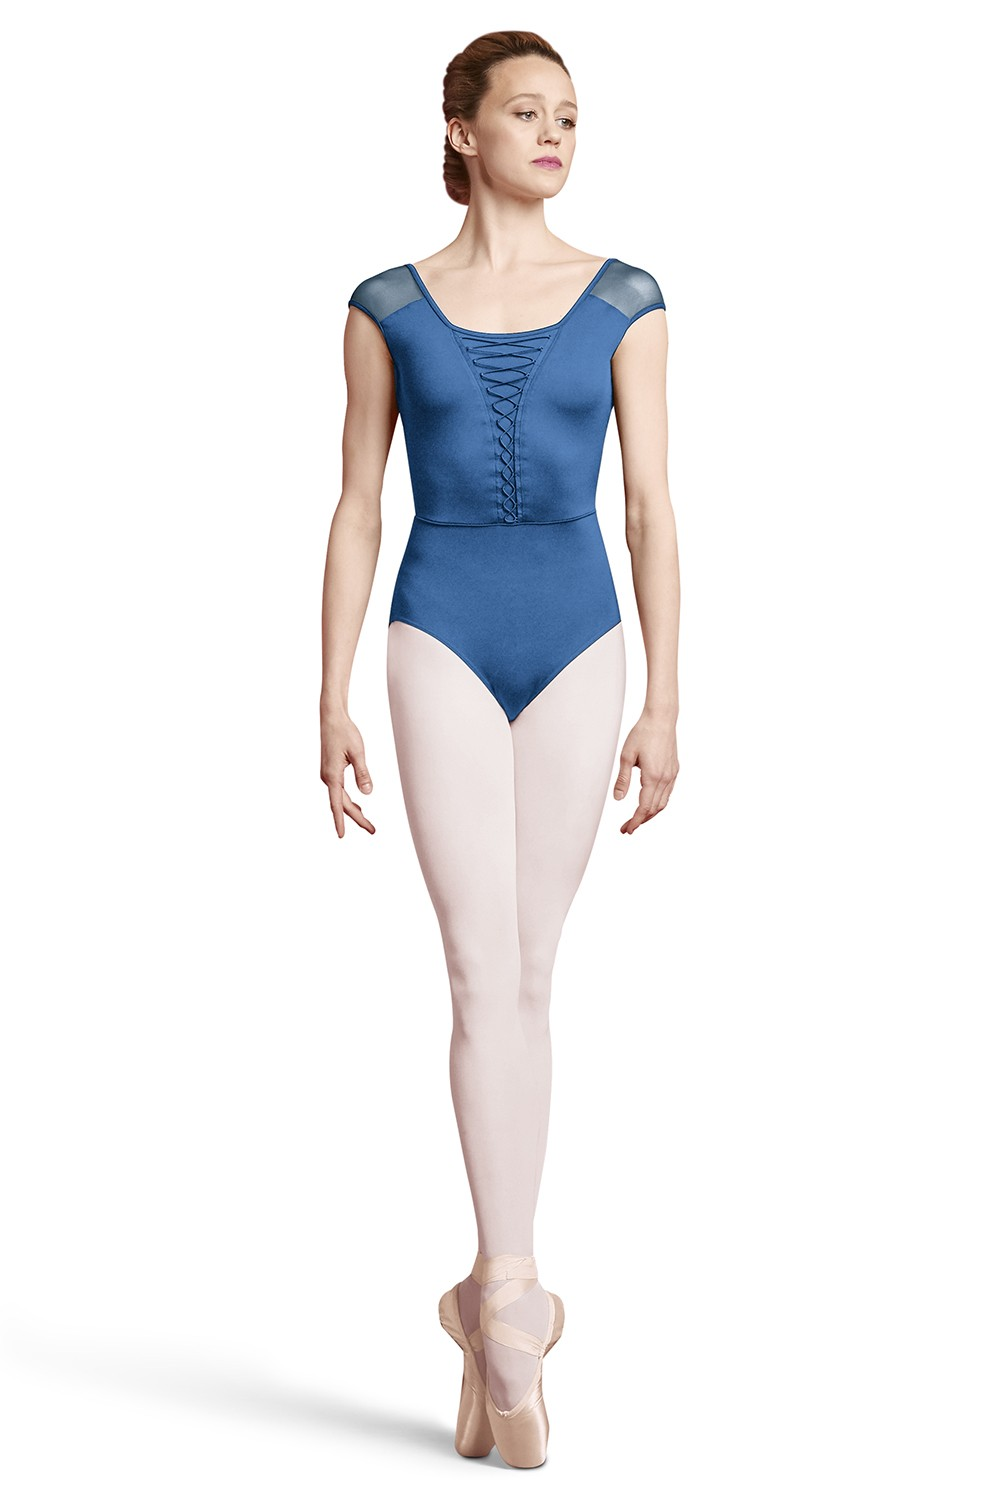 Cybele Women's Dance Leotards